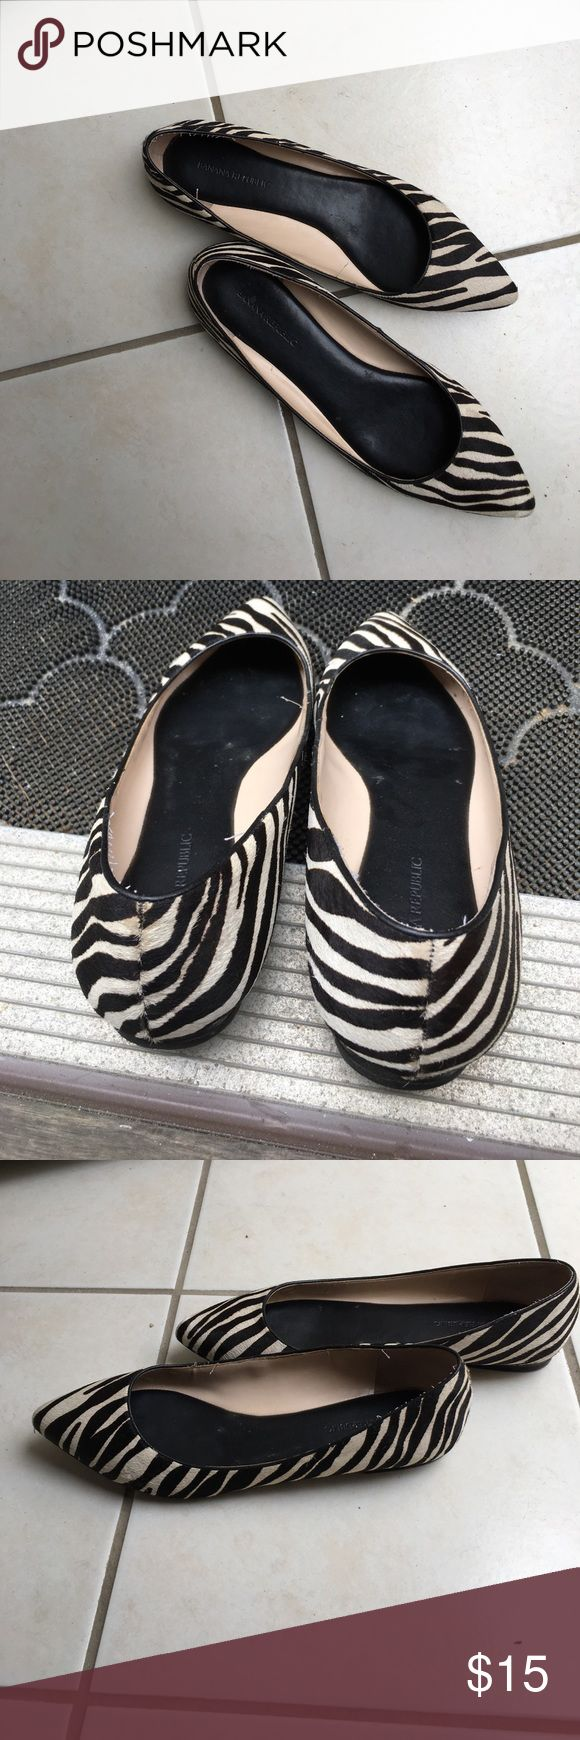 Black and white leopard flat shoes 9M Banana Republic black and white leopard flat shoes. Rarely worn in very good condition. Banana Republic Shoes Flats & Loafers